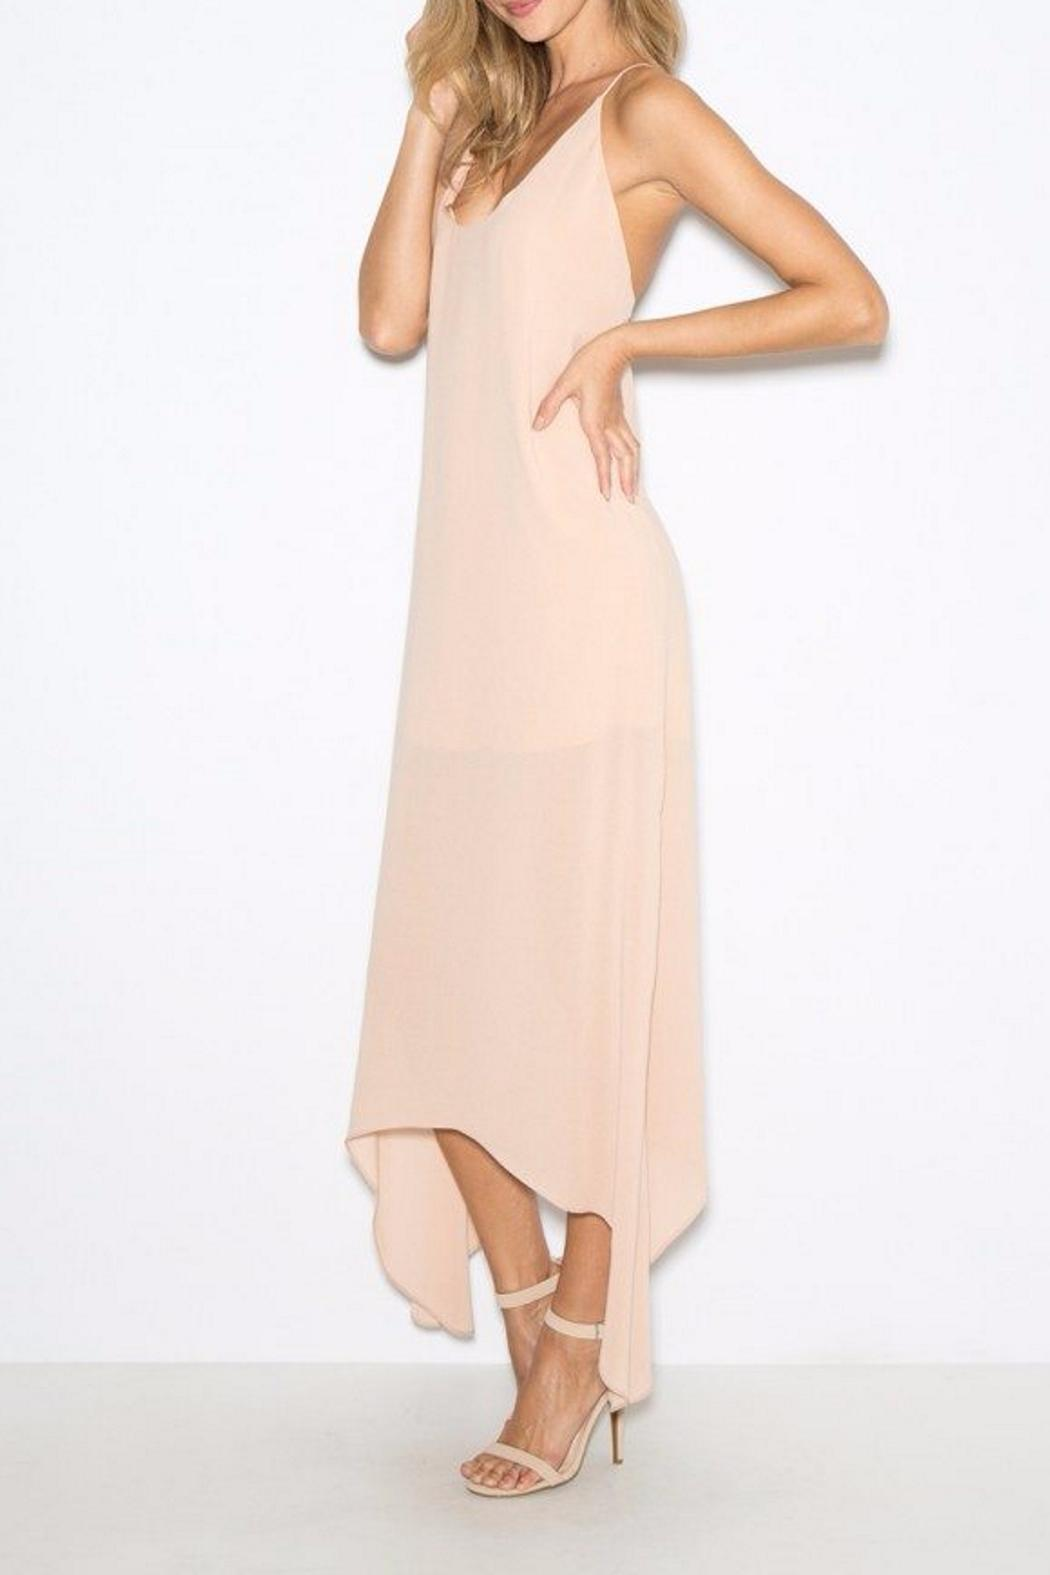 Rory Beca Castanets Gown - Side Cropped Image